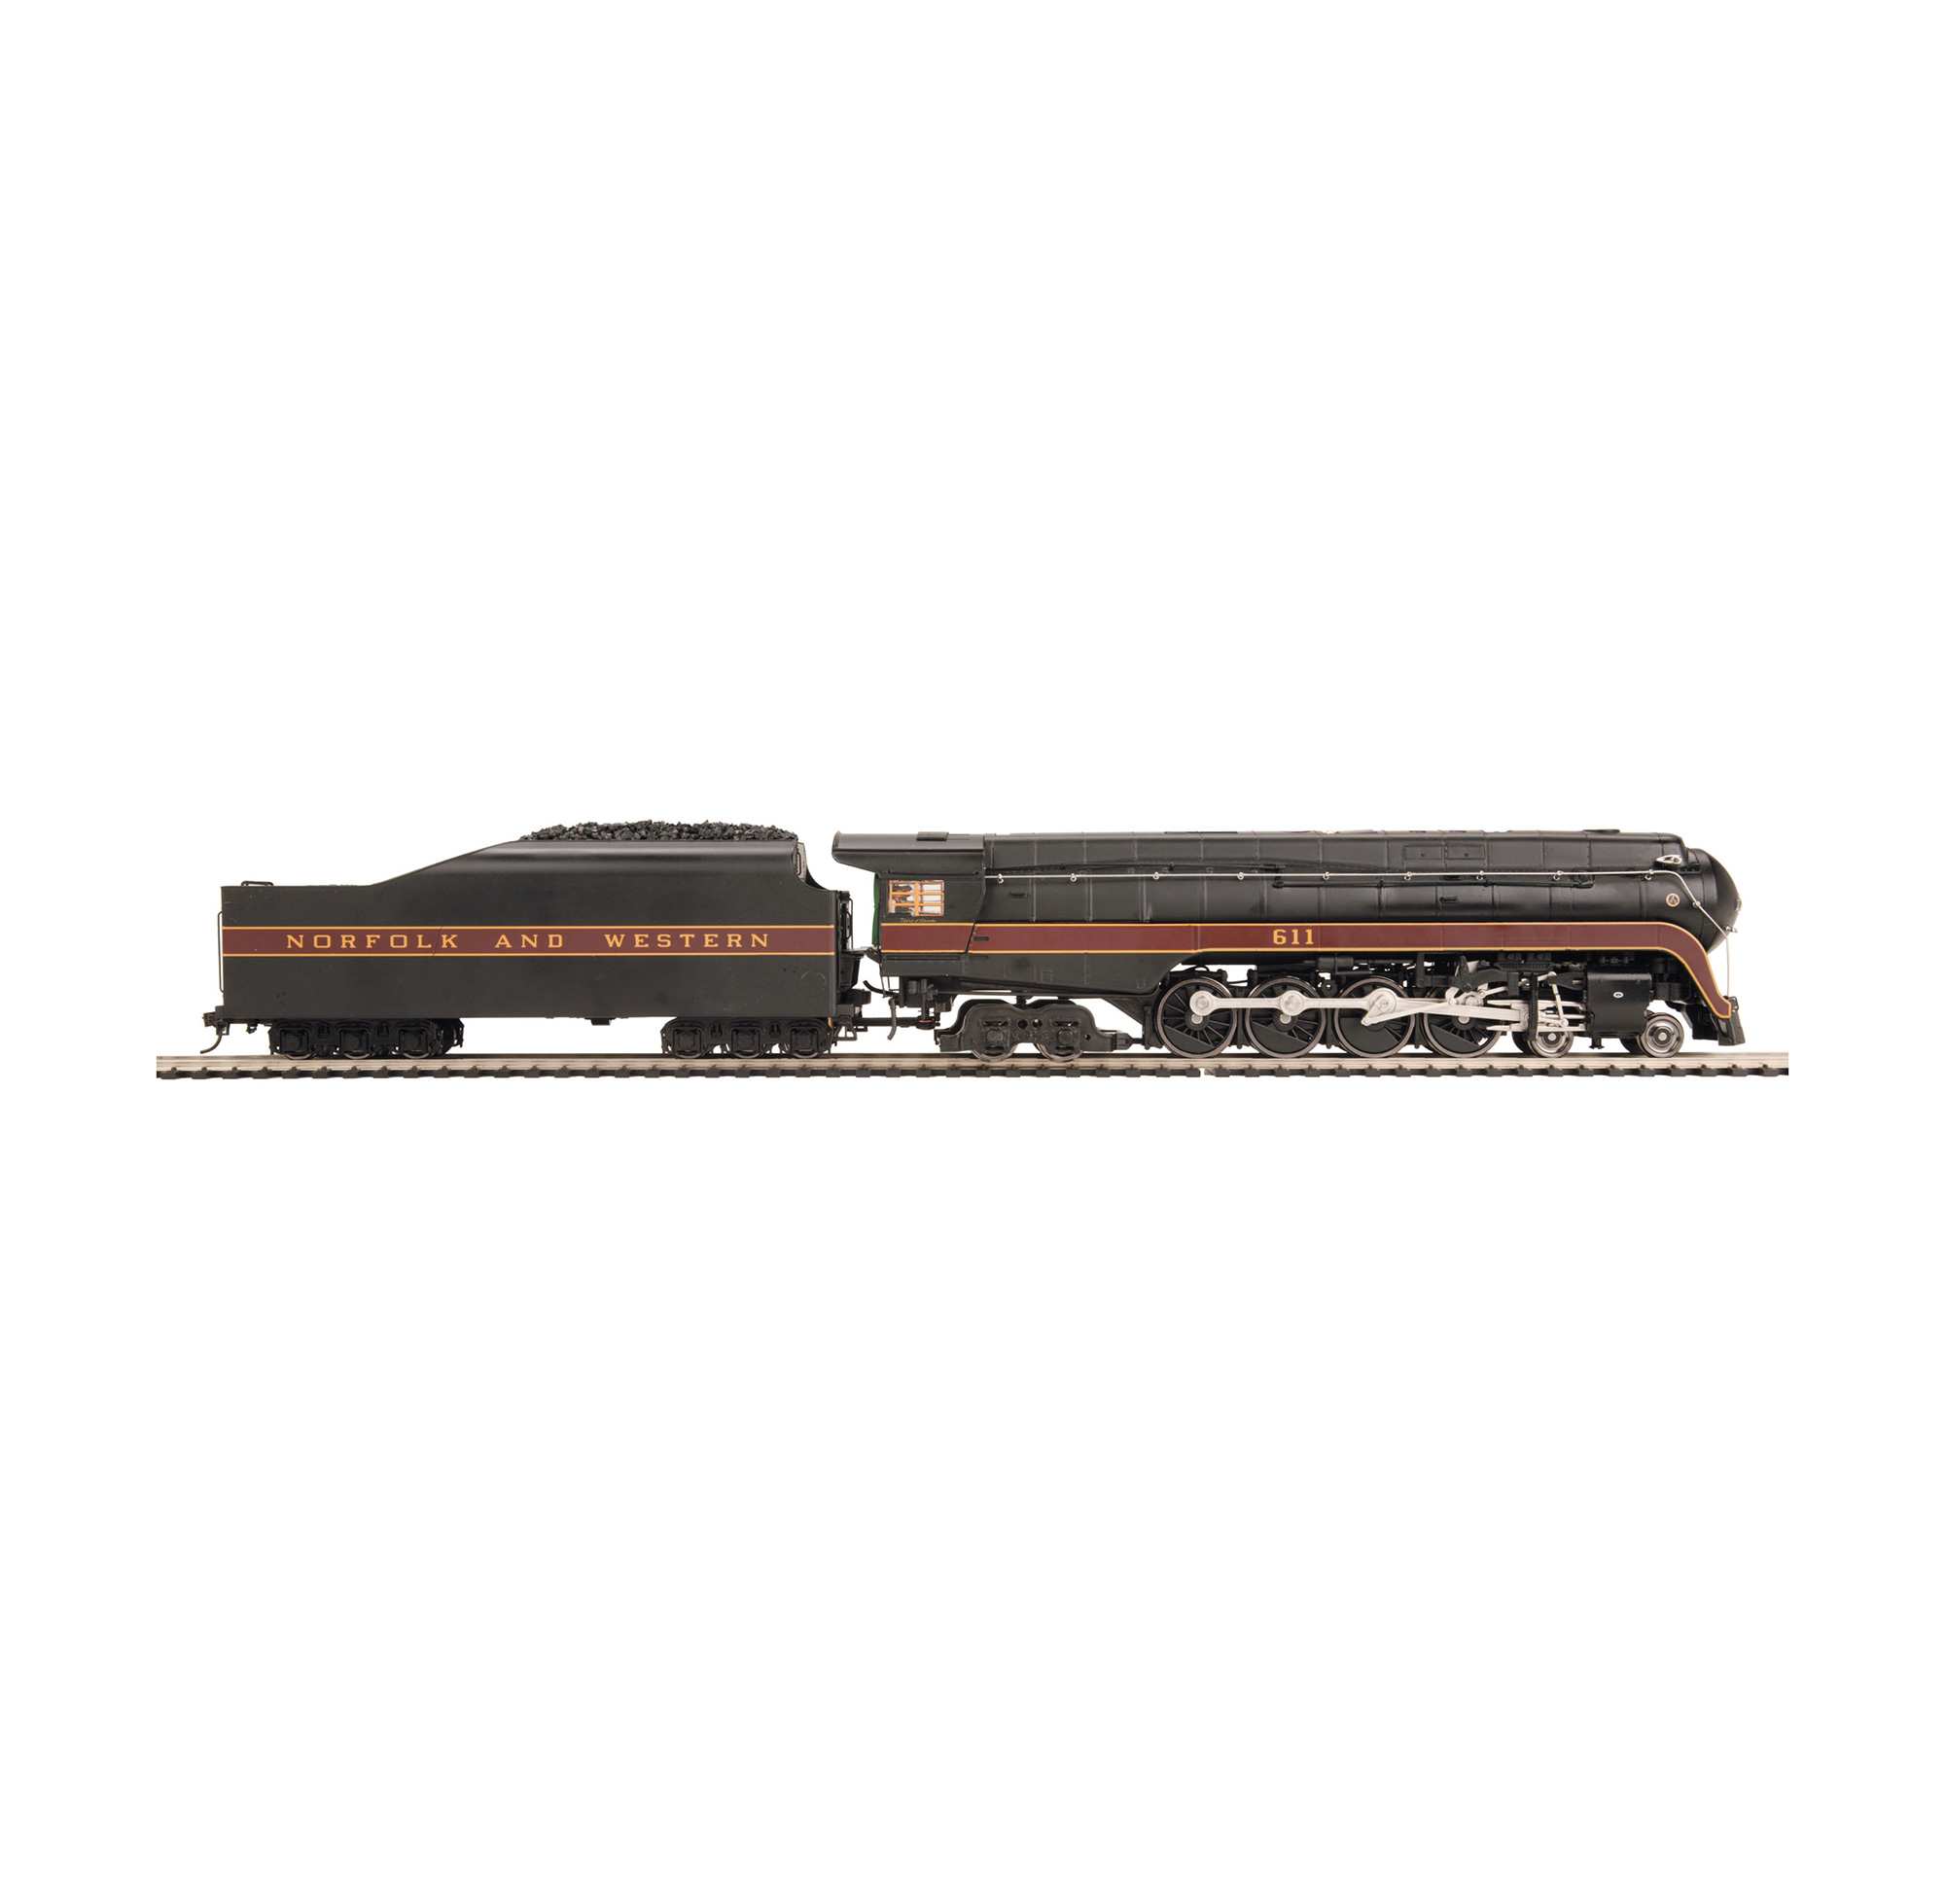 mth_ho_nw_classj_4-8-4_spirit_of_roanoke_611